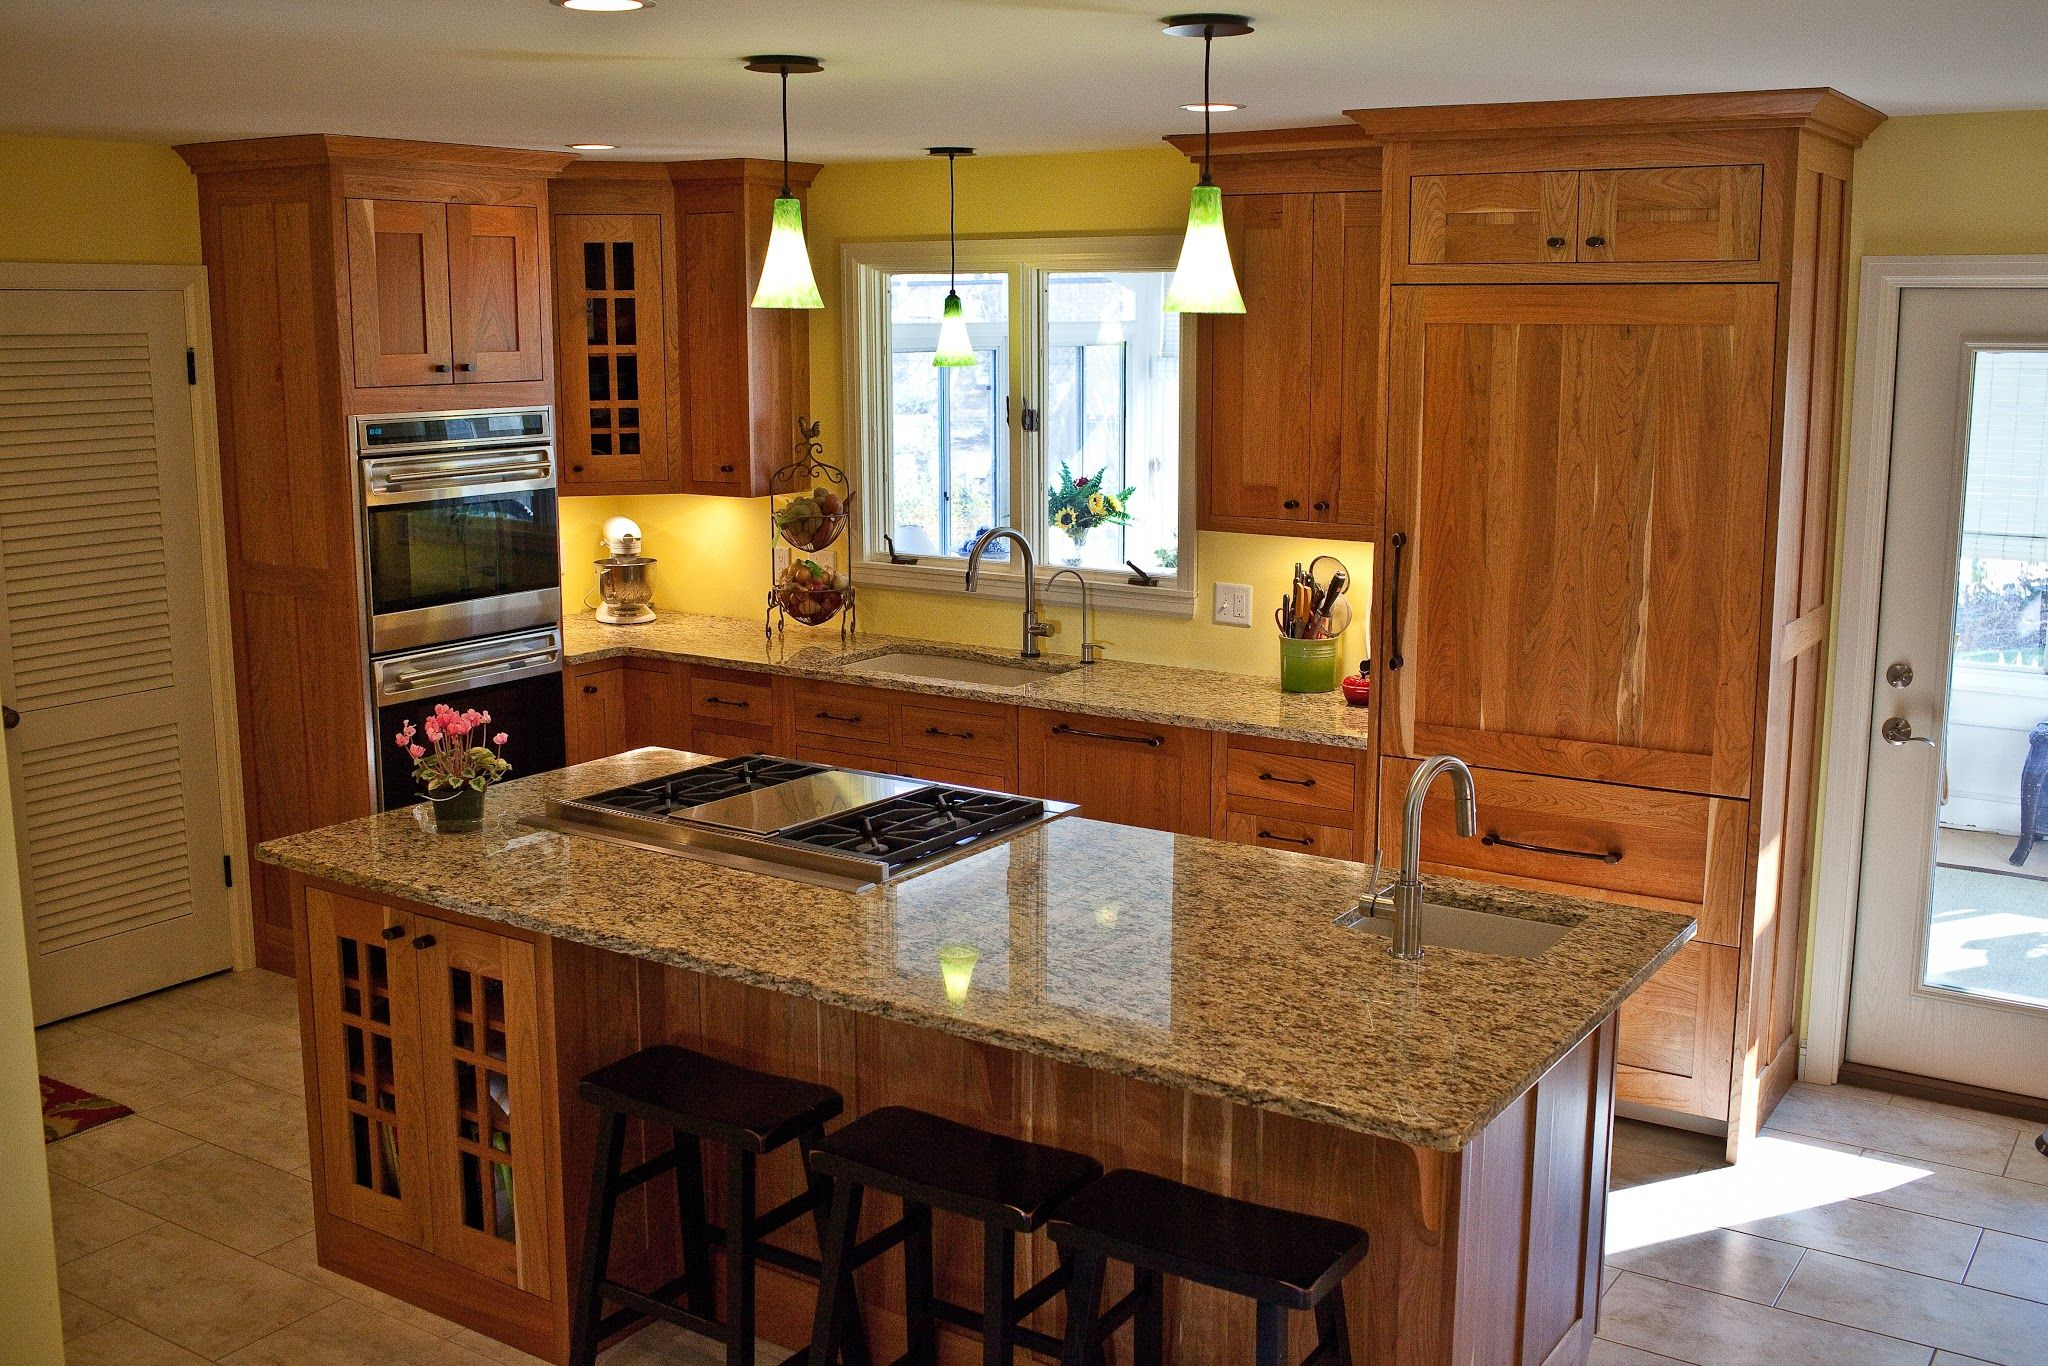 Kitchen Remodel And Redesign By Terry House Design Planning Madison Wisconsin Island Seating Kitchen Remodel Kitchen Island Storage Diy Kitchen Renovation